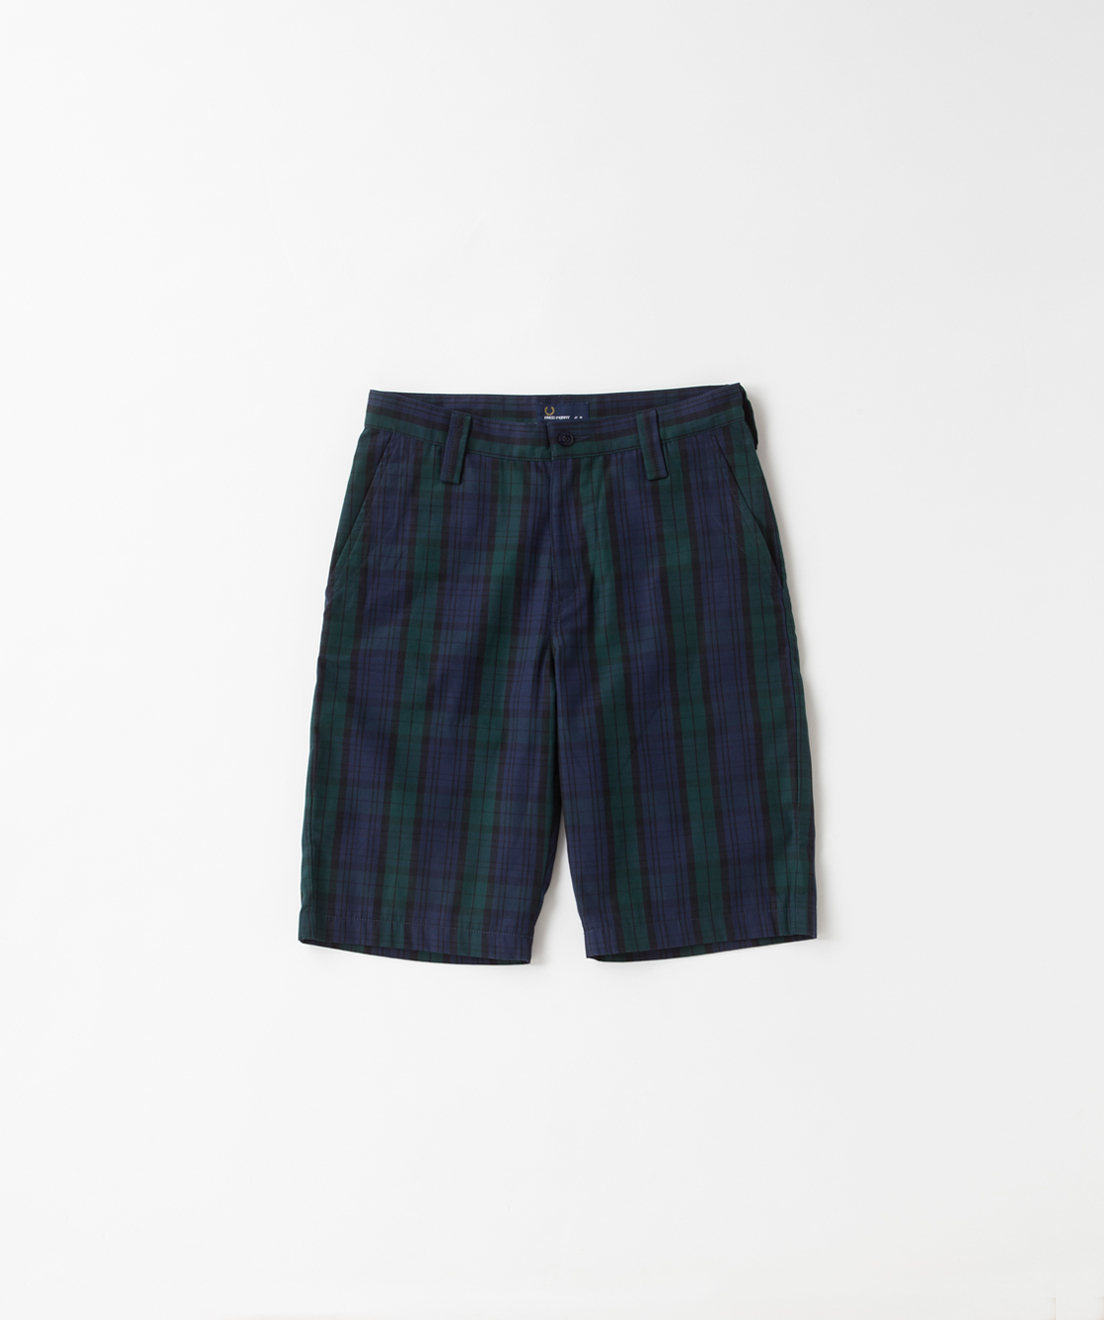 フレッドペリー F4349 01 MEN'S CHECK HALF PANTS BLACK WATCH